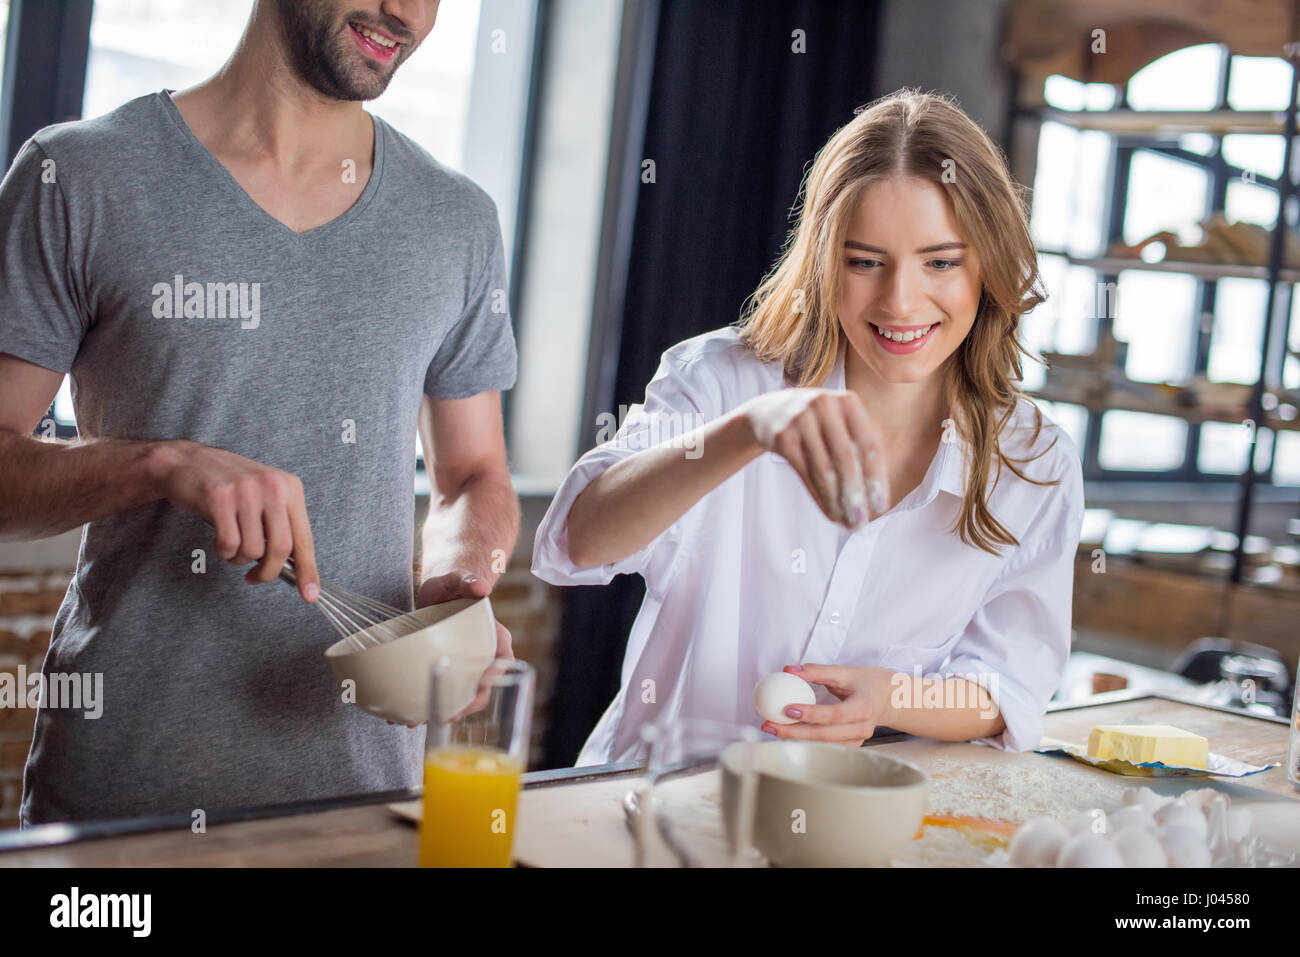 Young couple cooking together with eggs and flour in kitchen - Stock Image